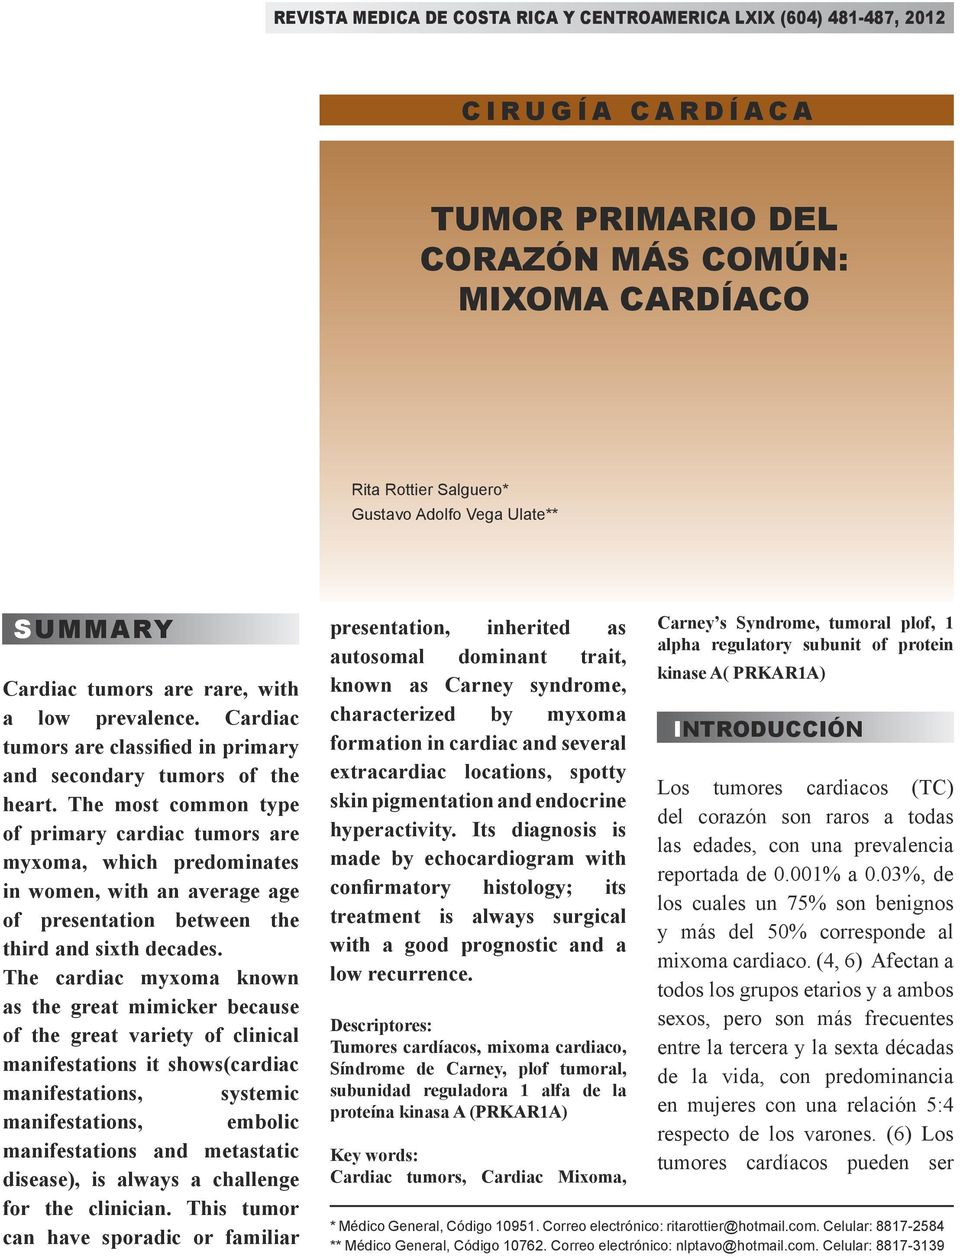 The most common type of primary cardiac tumors are myxoma, which predominates in women, with an average age of presentation between the third and sixth decades.